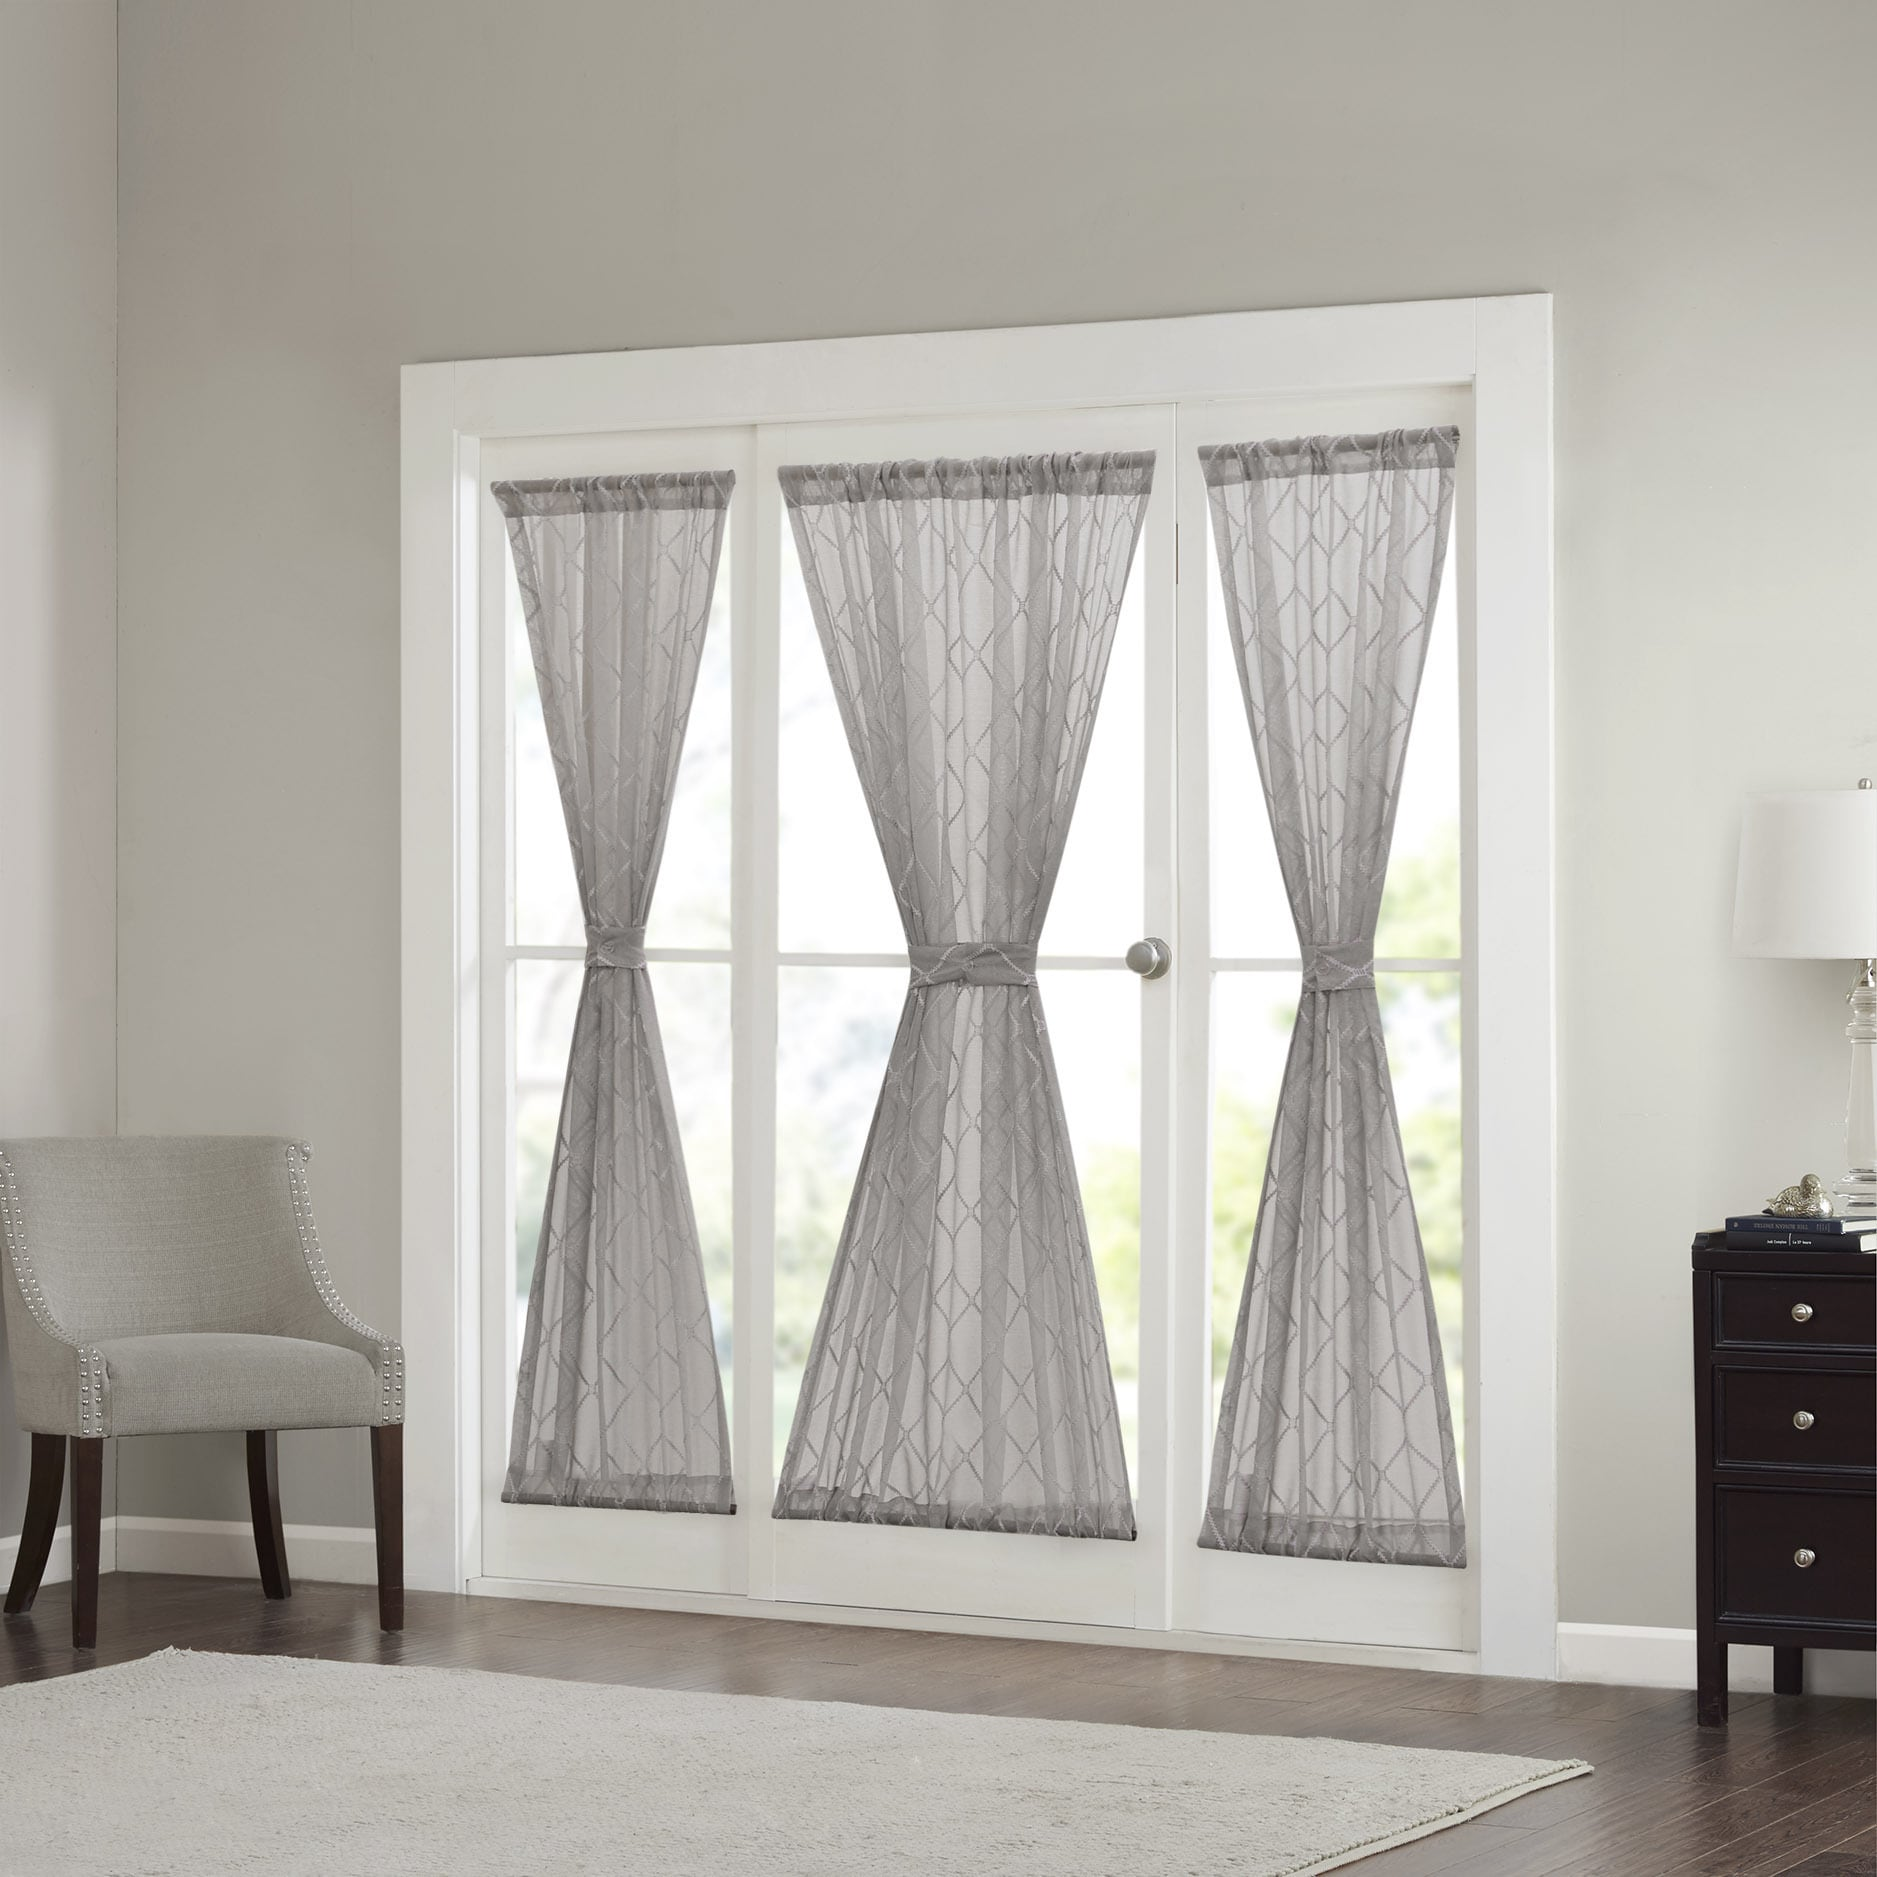 Madison Park Warner Iris Diamond Sheer Sidelight Curtain Panel   Free  Shipping On Orders Over $45   Overstock.com   19093221